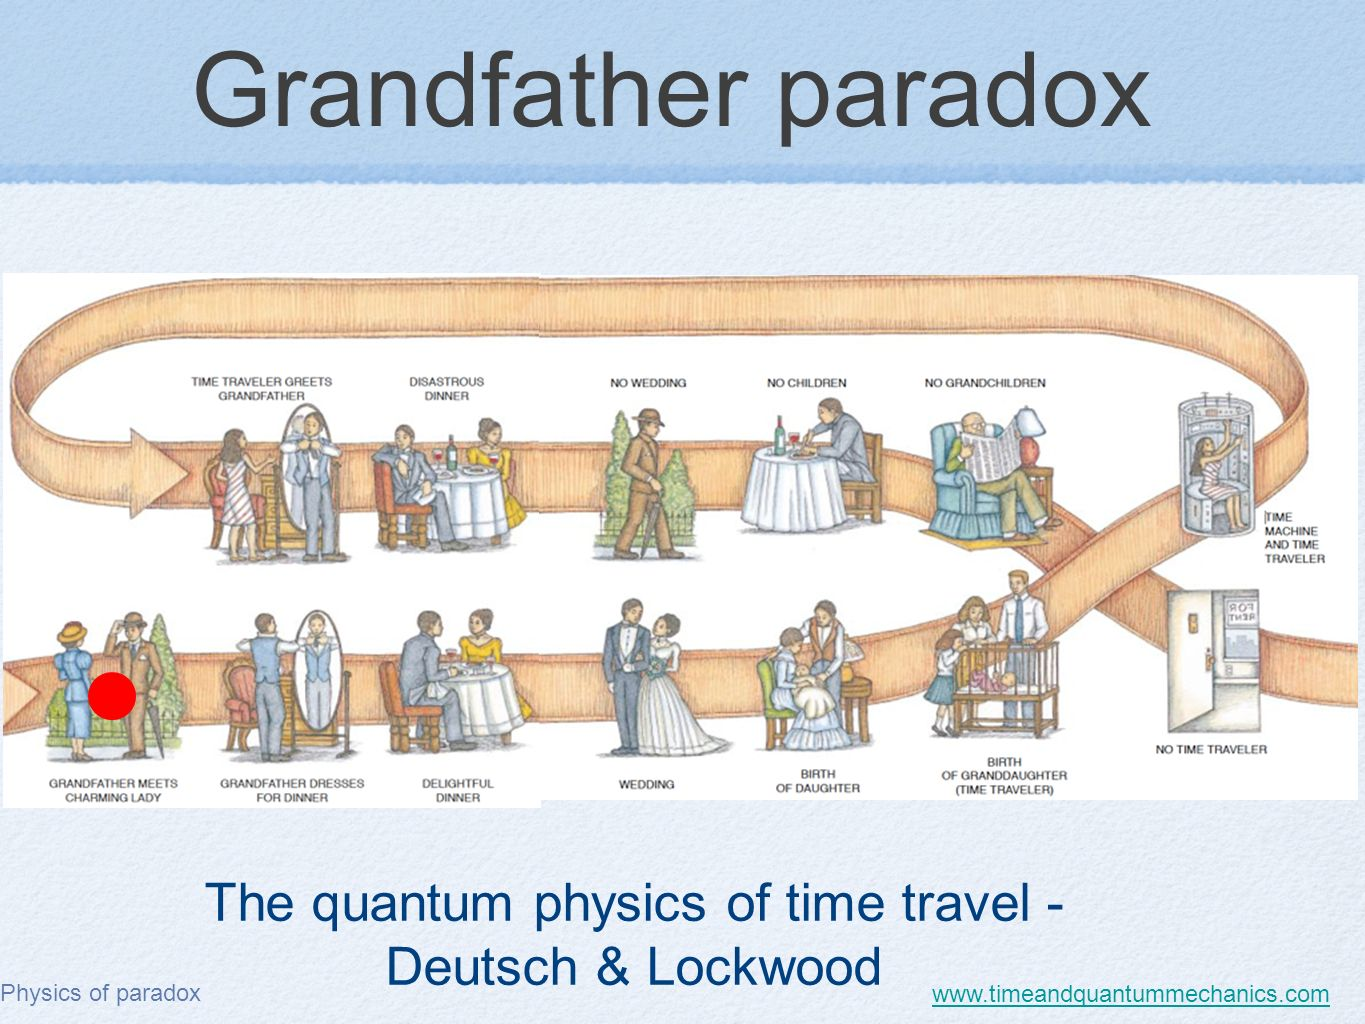 What is the Paradox of the grandfather